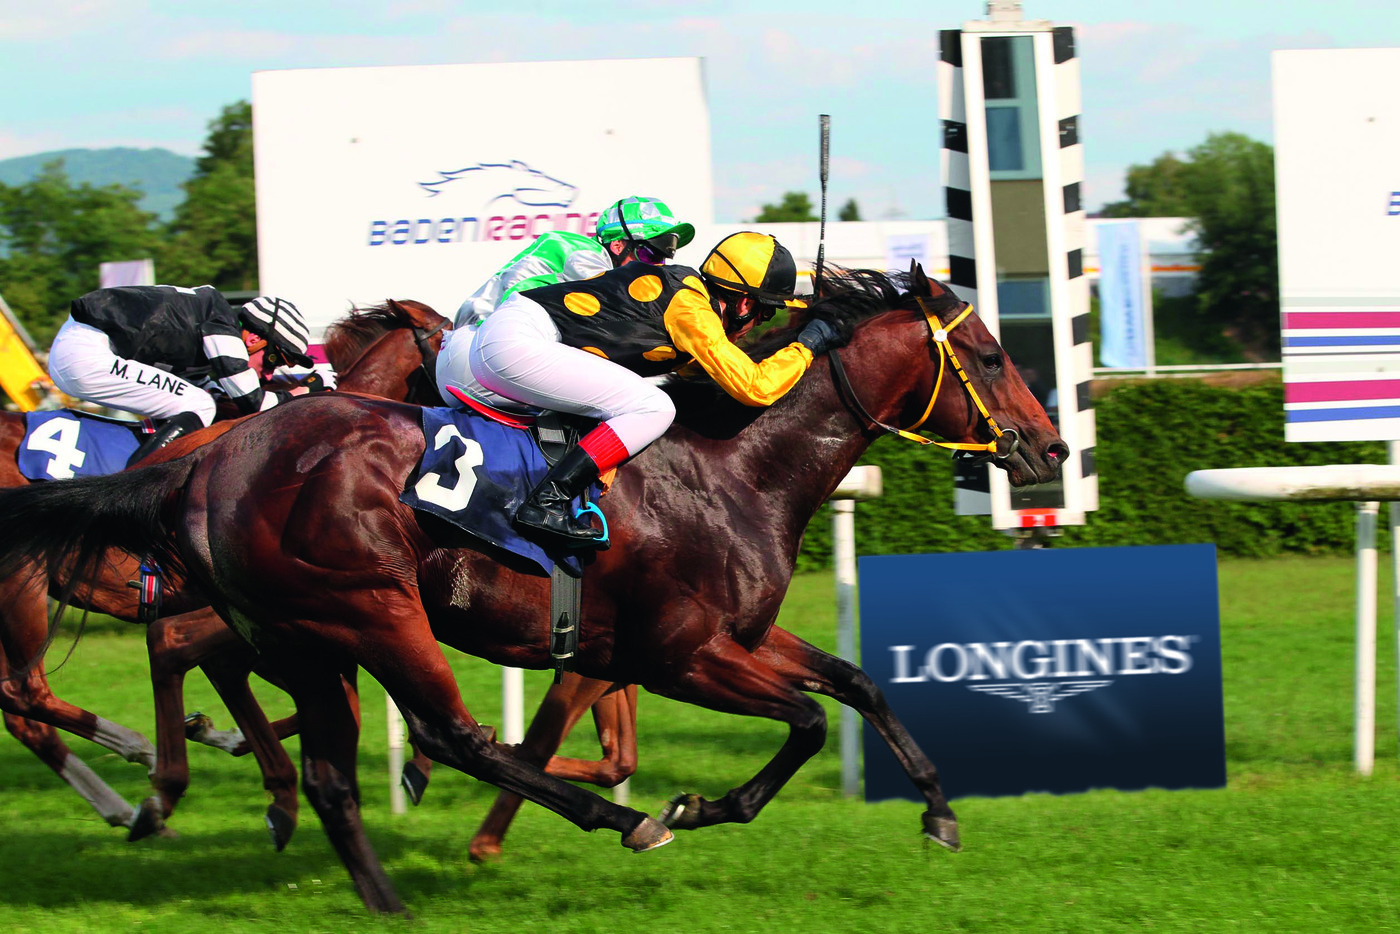 Longines Flat Racing Event: Longines: new title sponsor of the Grosser Preis von Baden 1